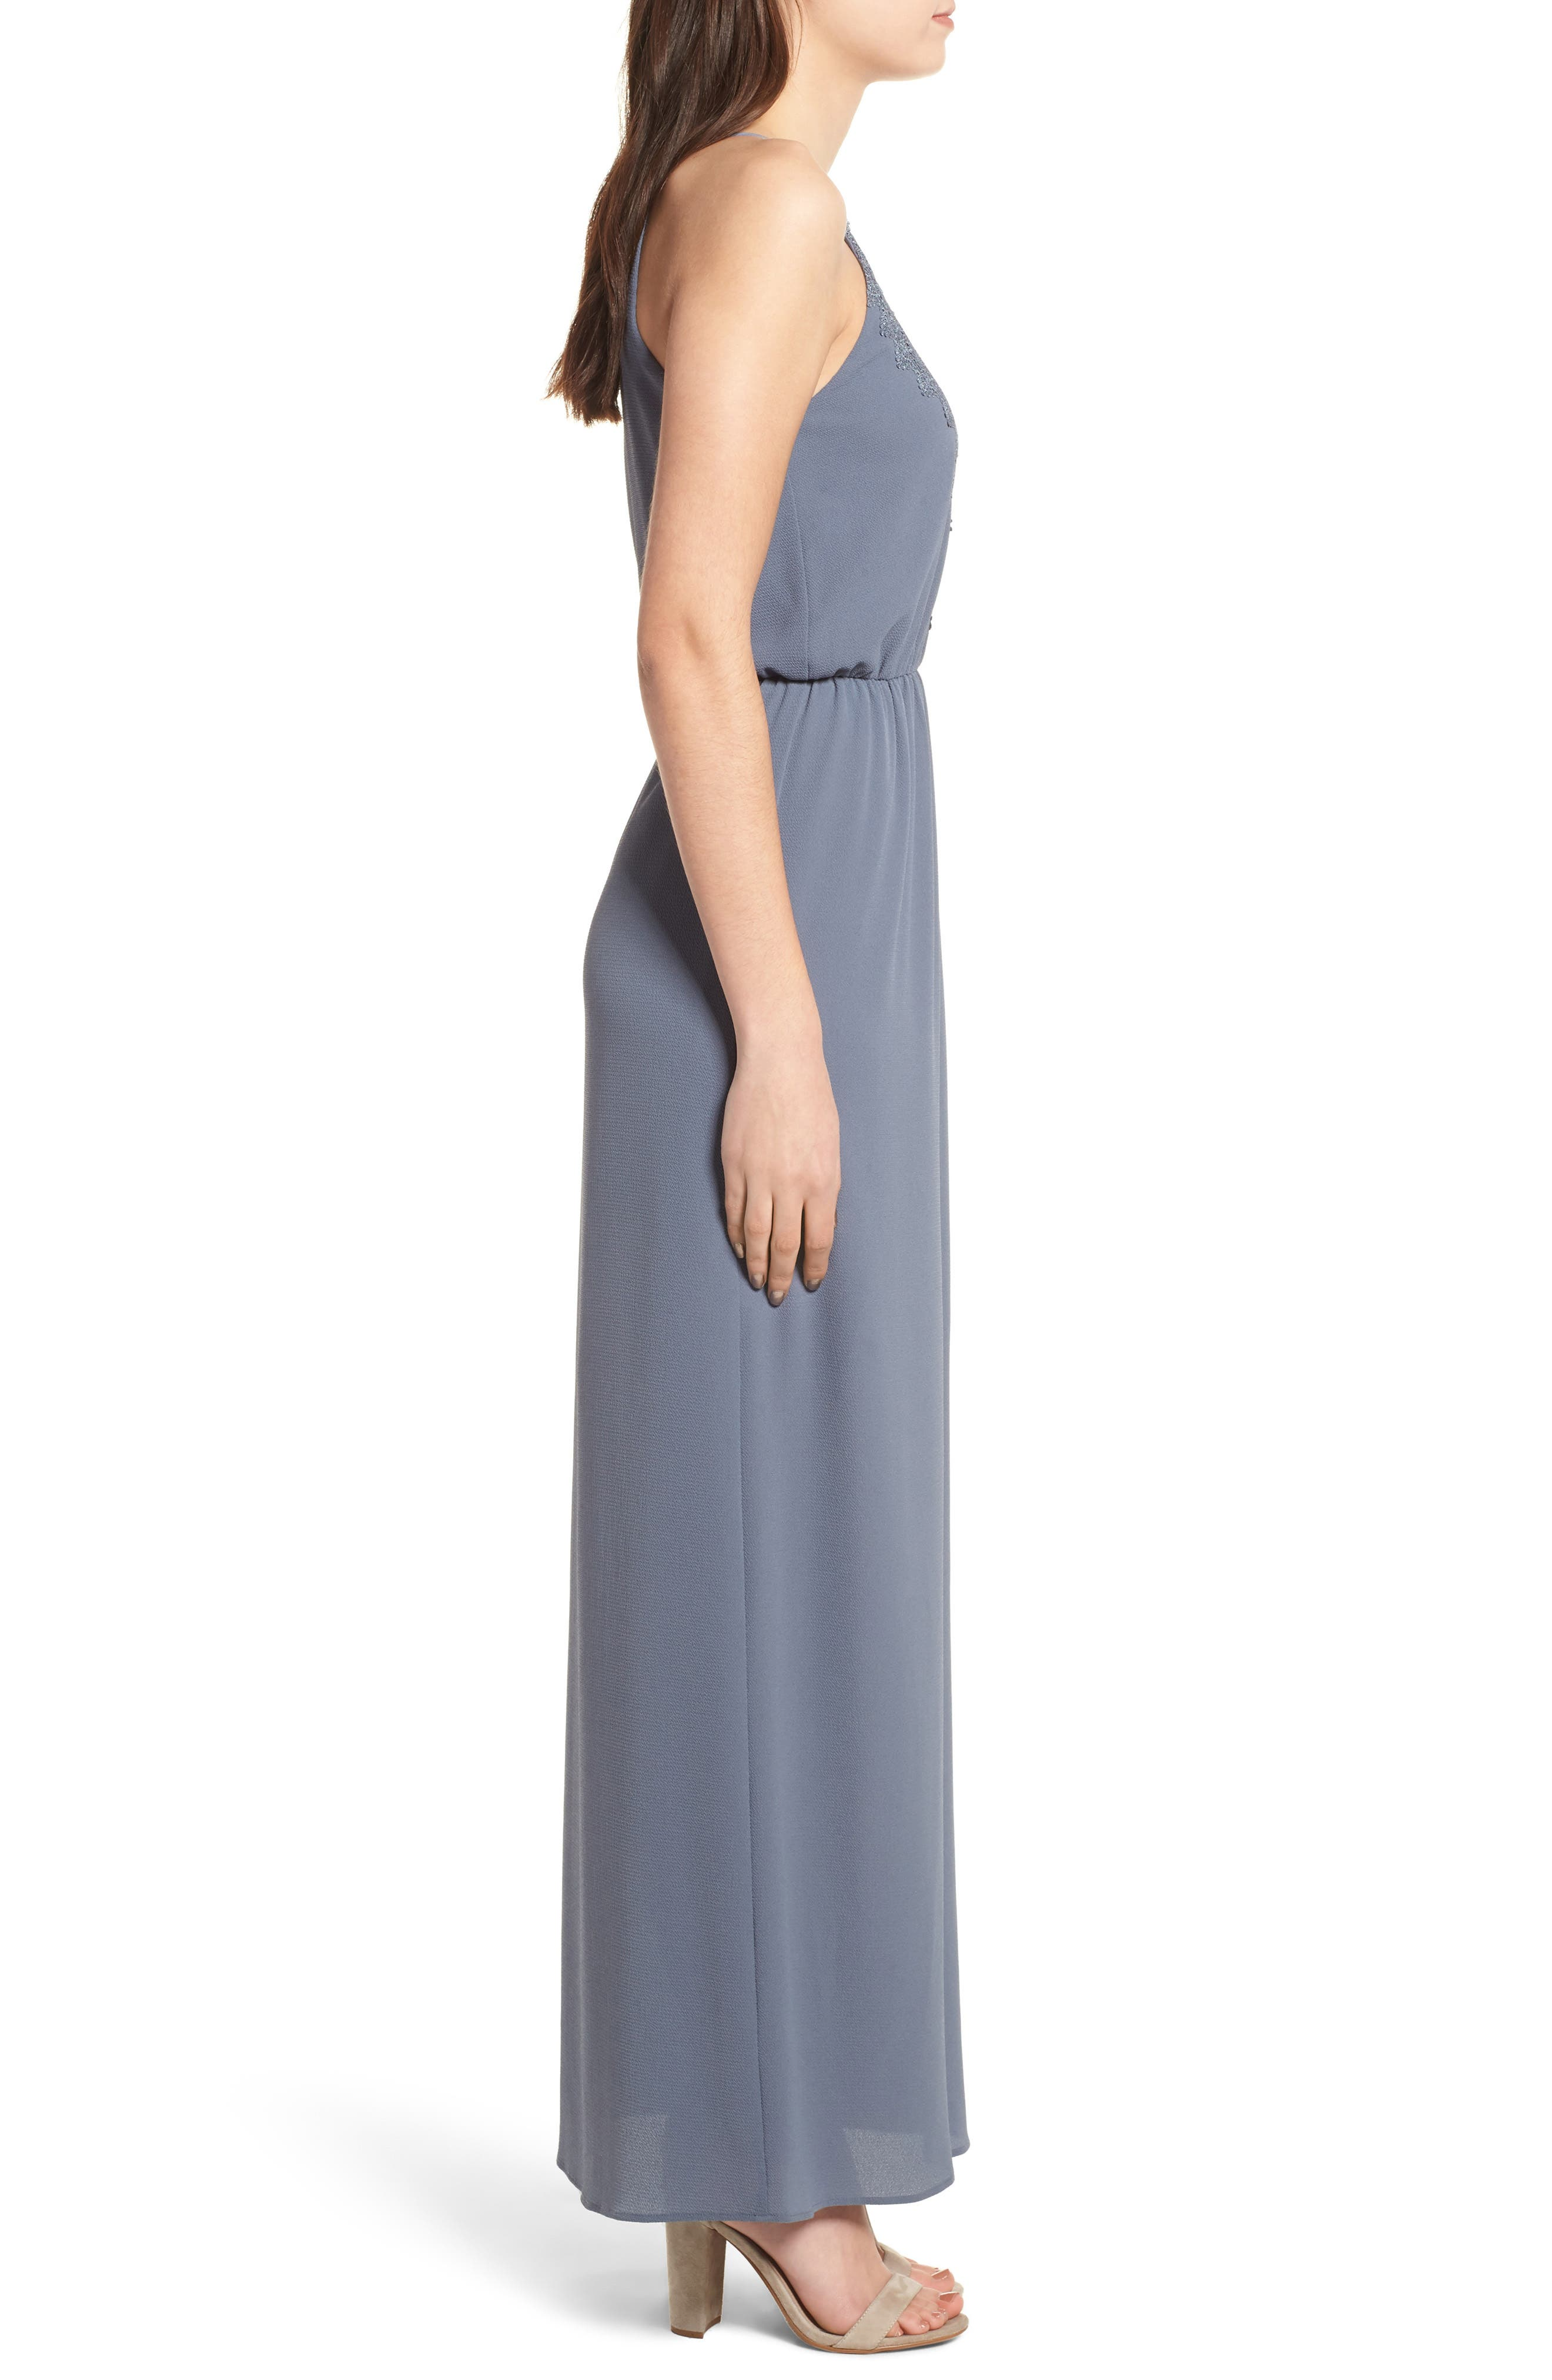 Posie Maxi Dress,                             Alternate thumbnail 3, color,                             Grey Grisaille